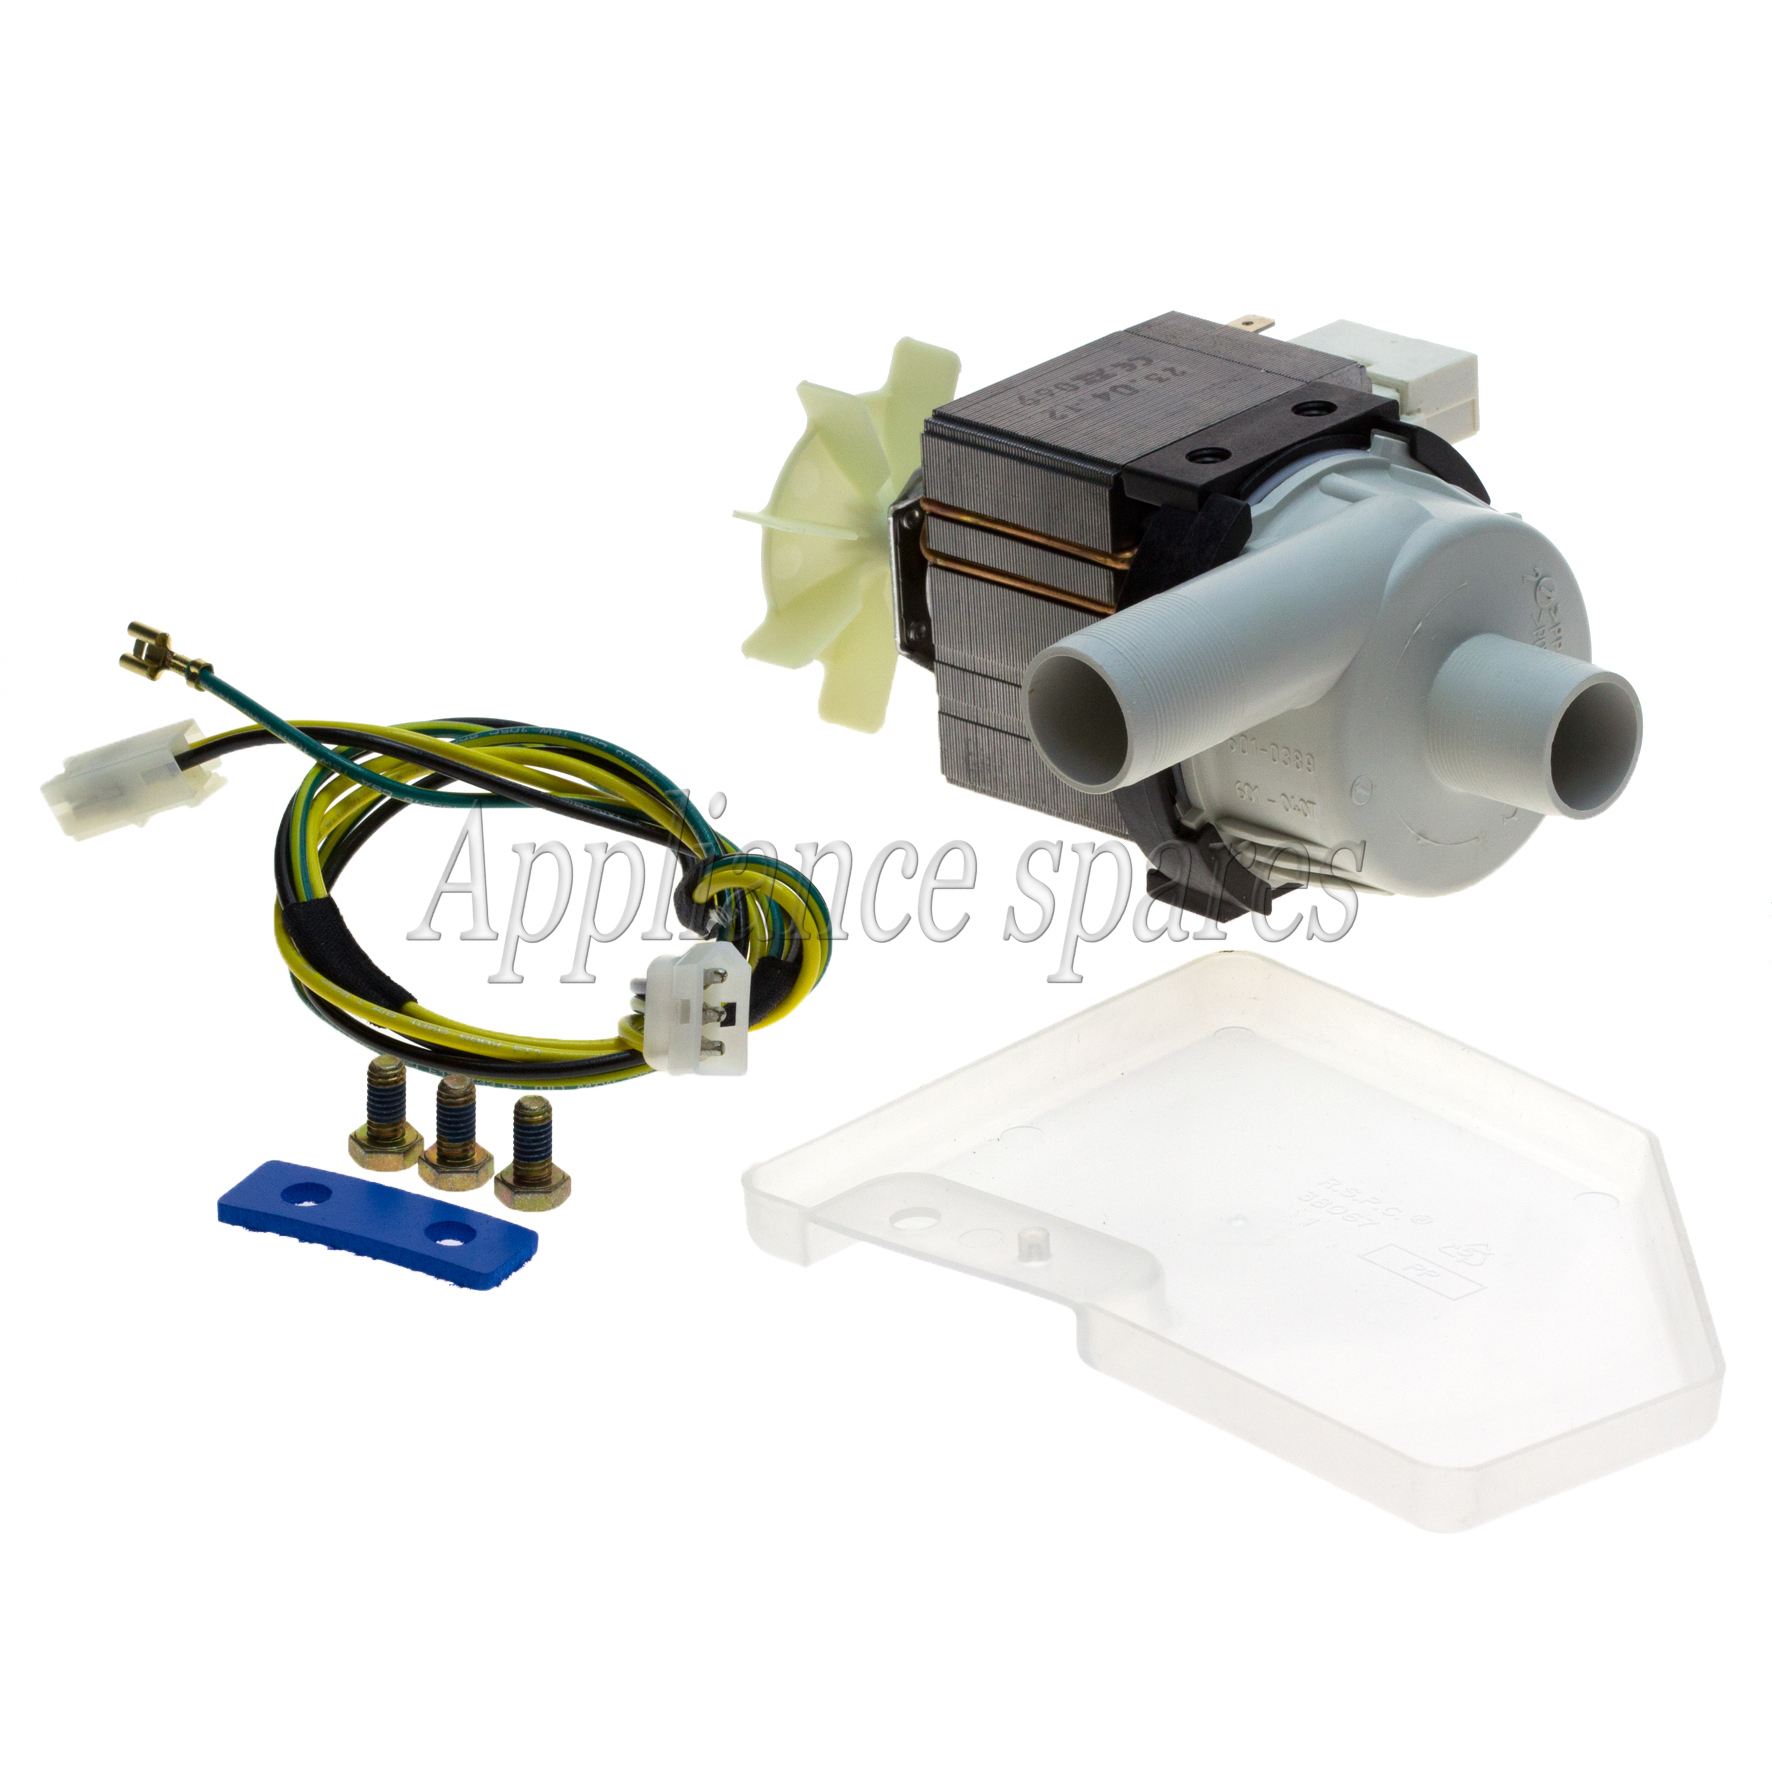 speed queen top loader washing machine original electric drain pump lategan and van biljoens appliance spares parts and accessories